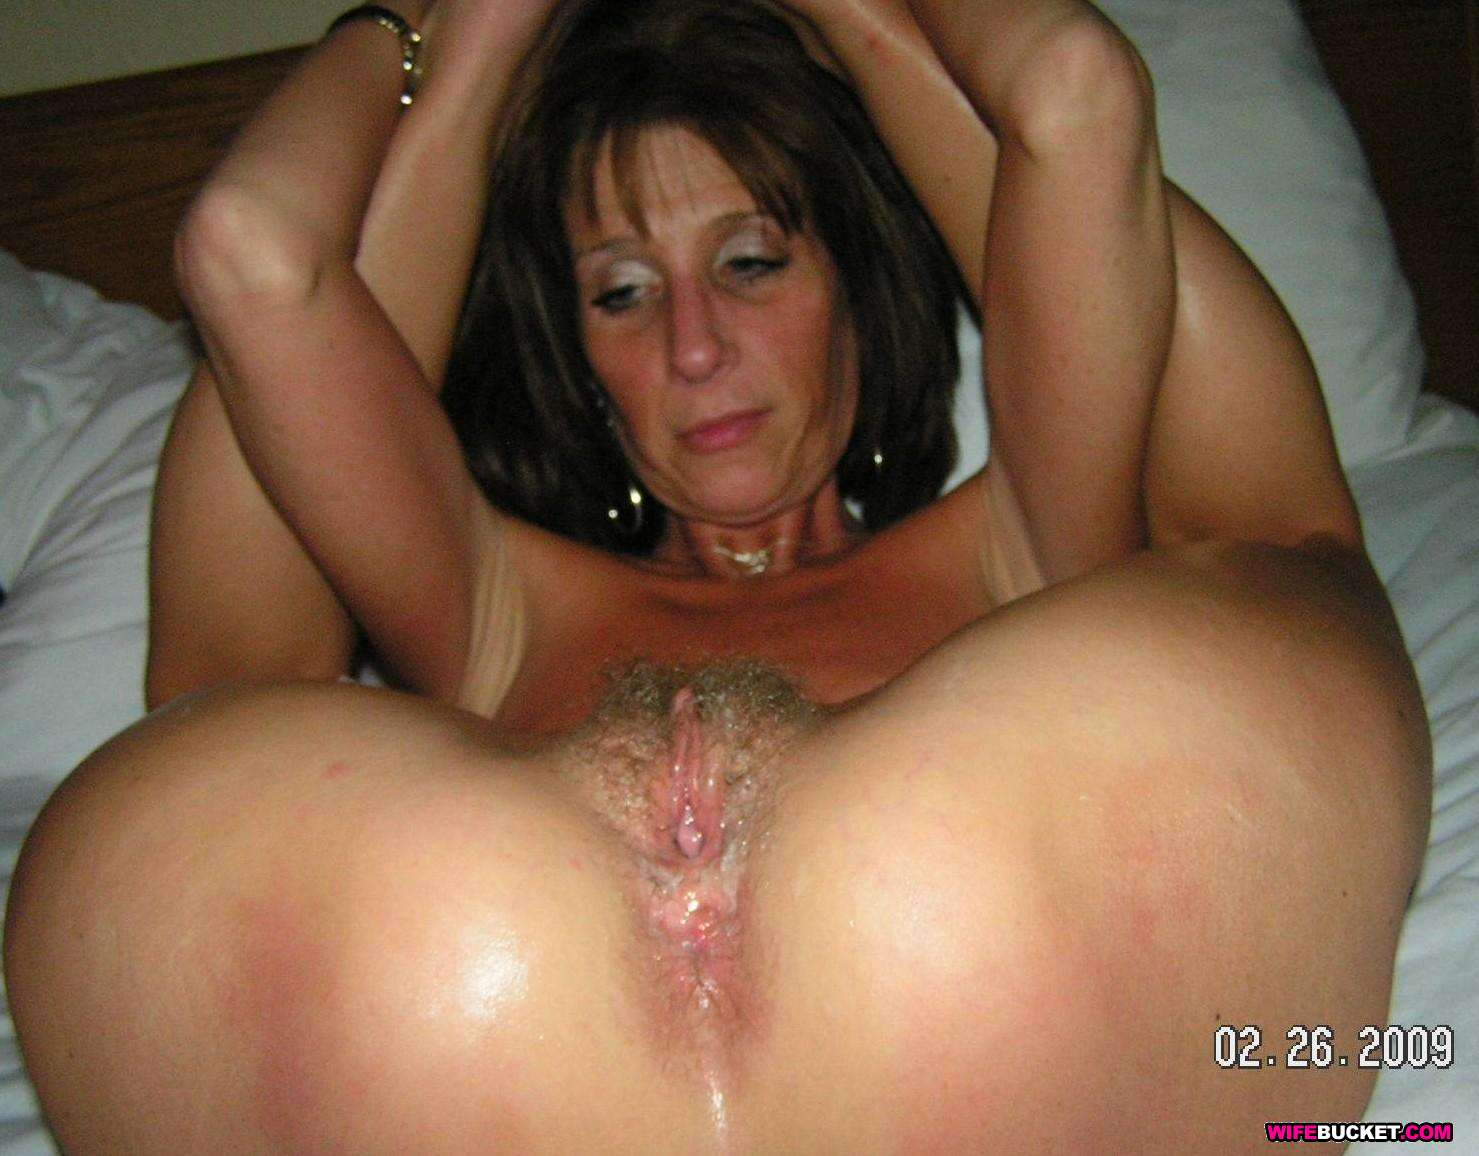 Hot amateur milf videos